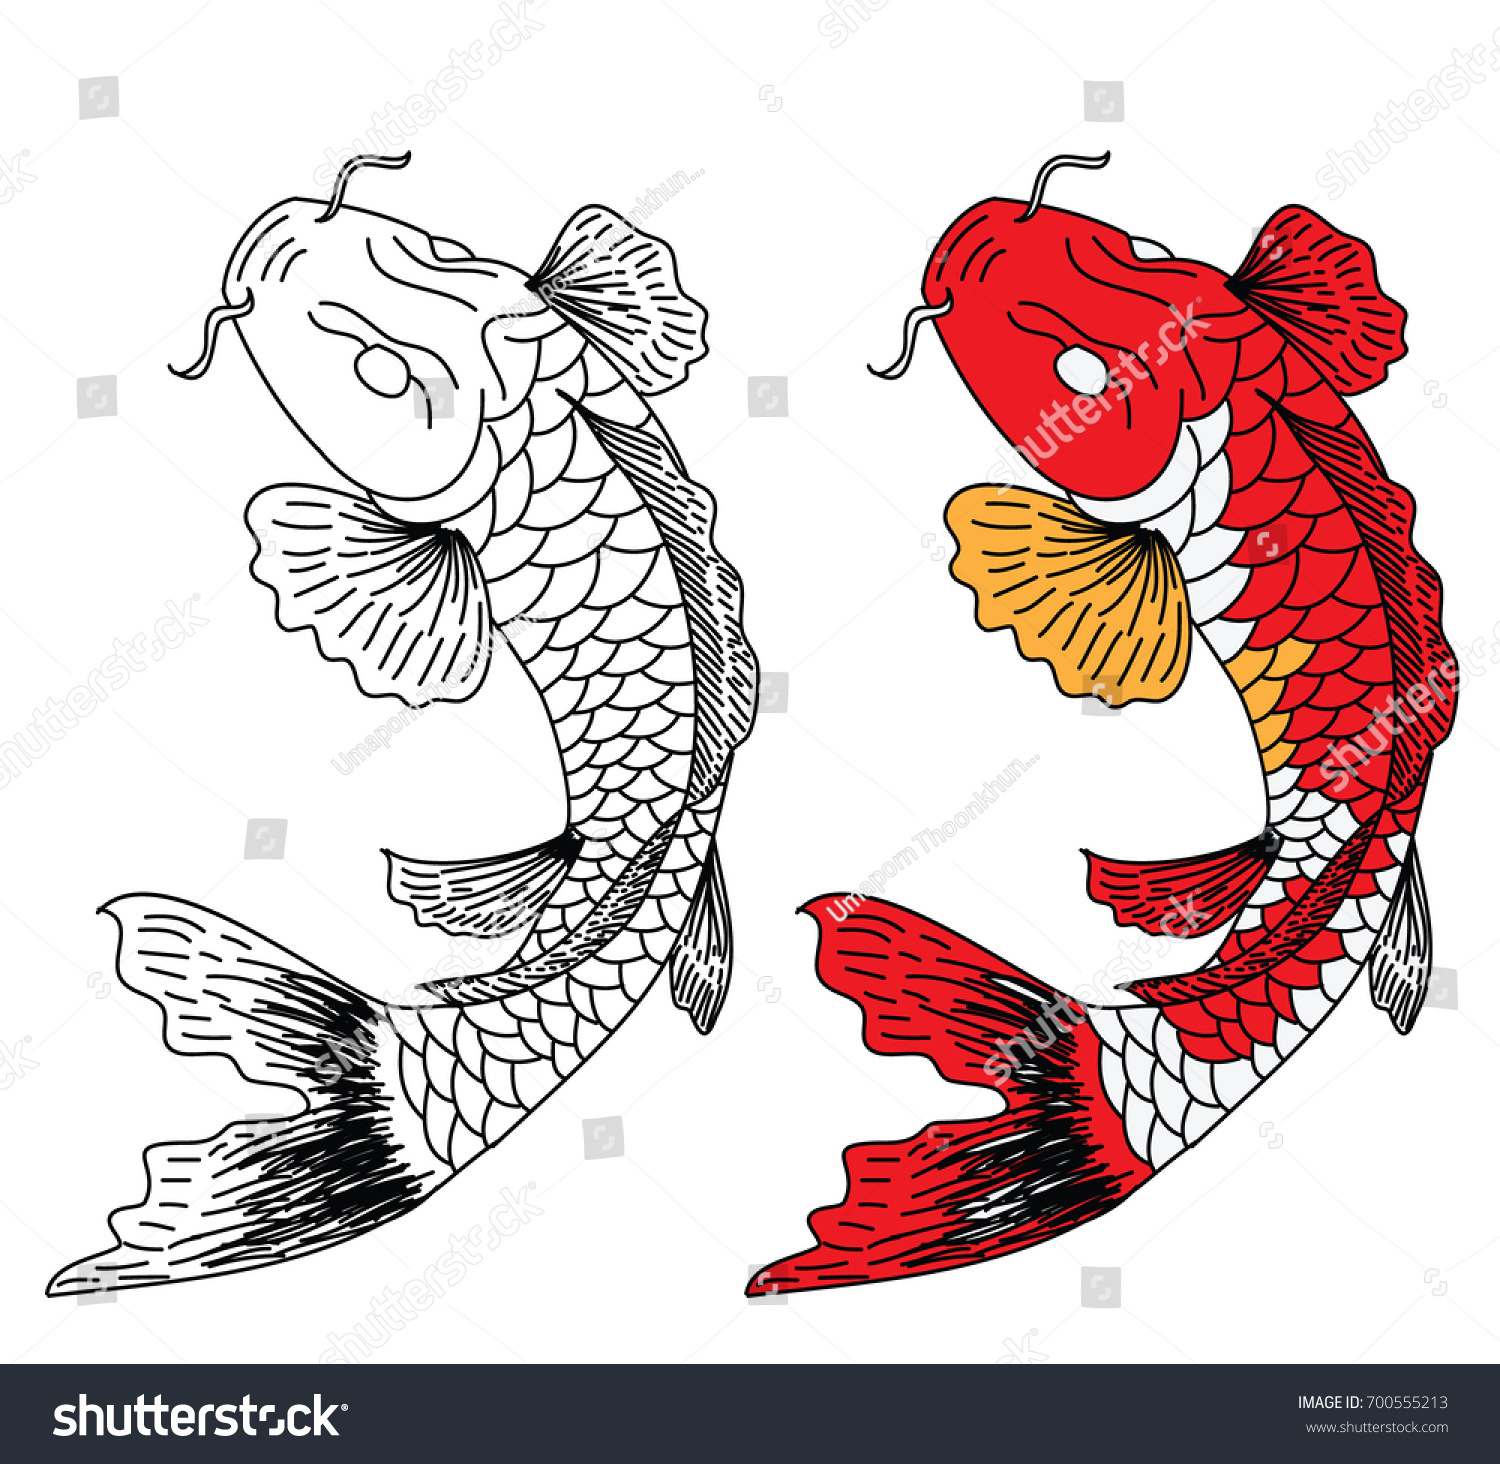 Hand Drawn Line Art Fish Koi Stock Vector 700555213 - Shutterstock